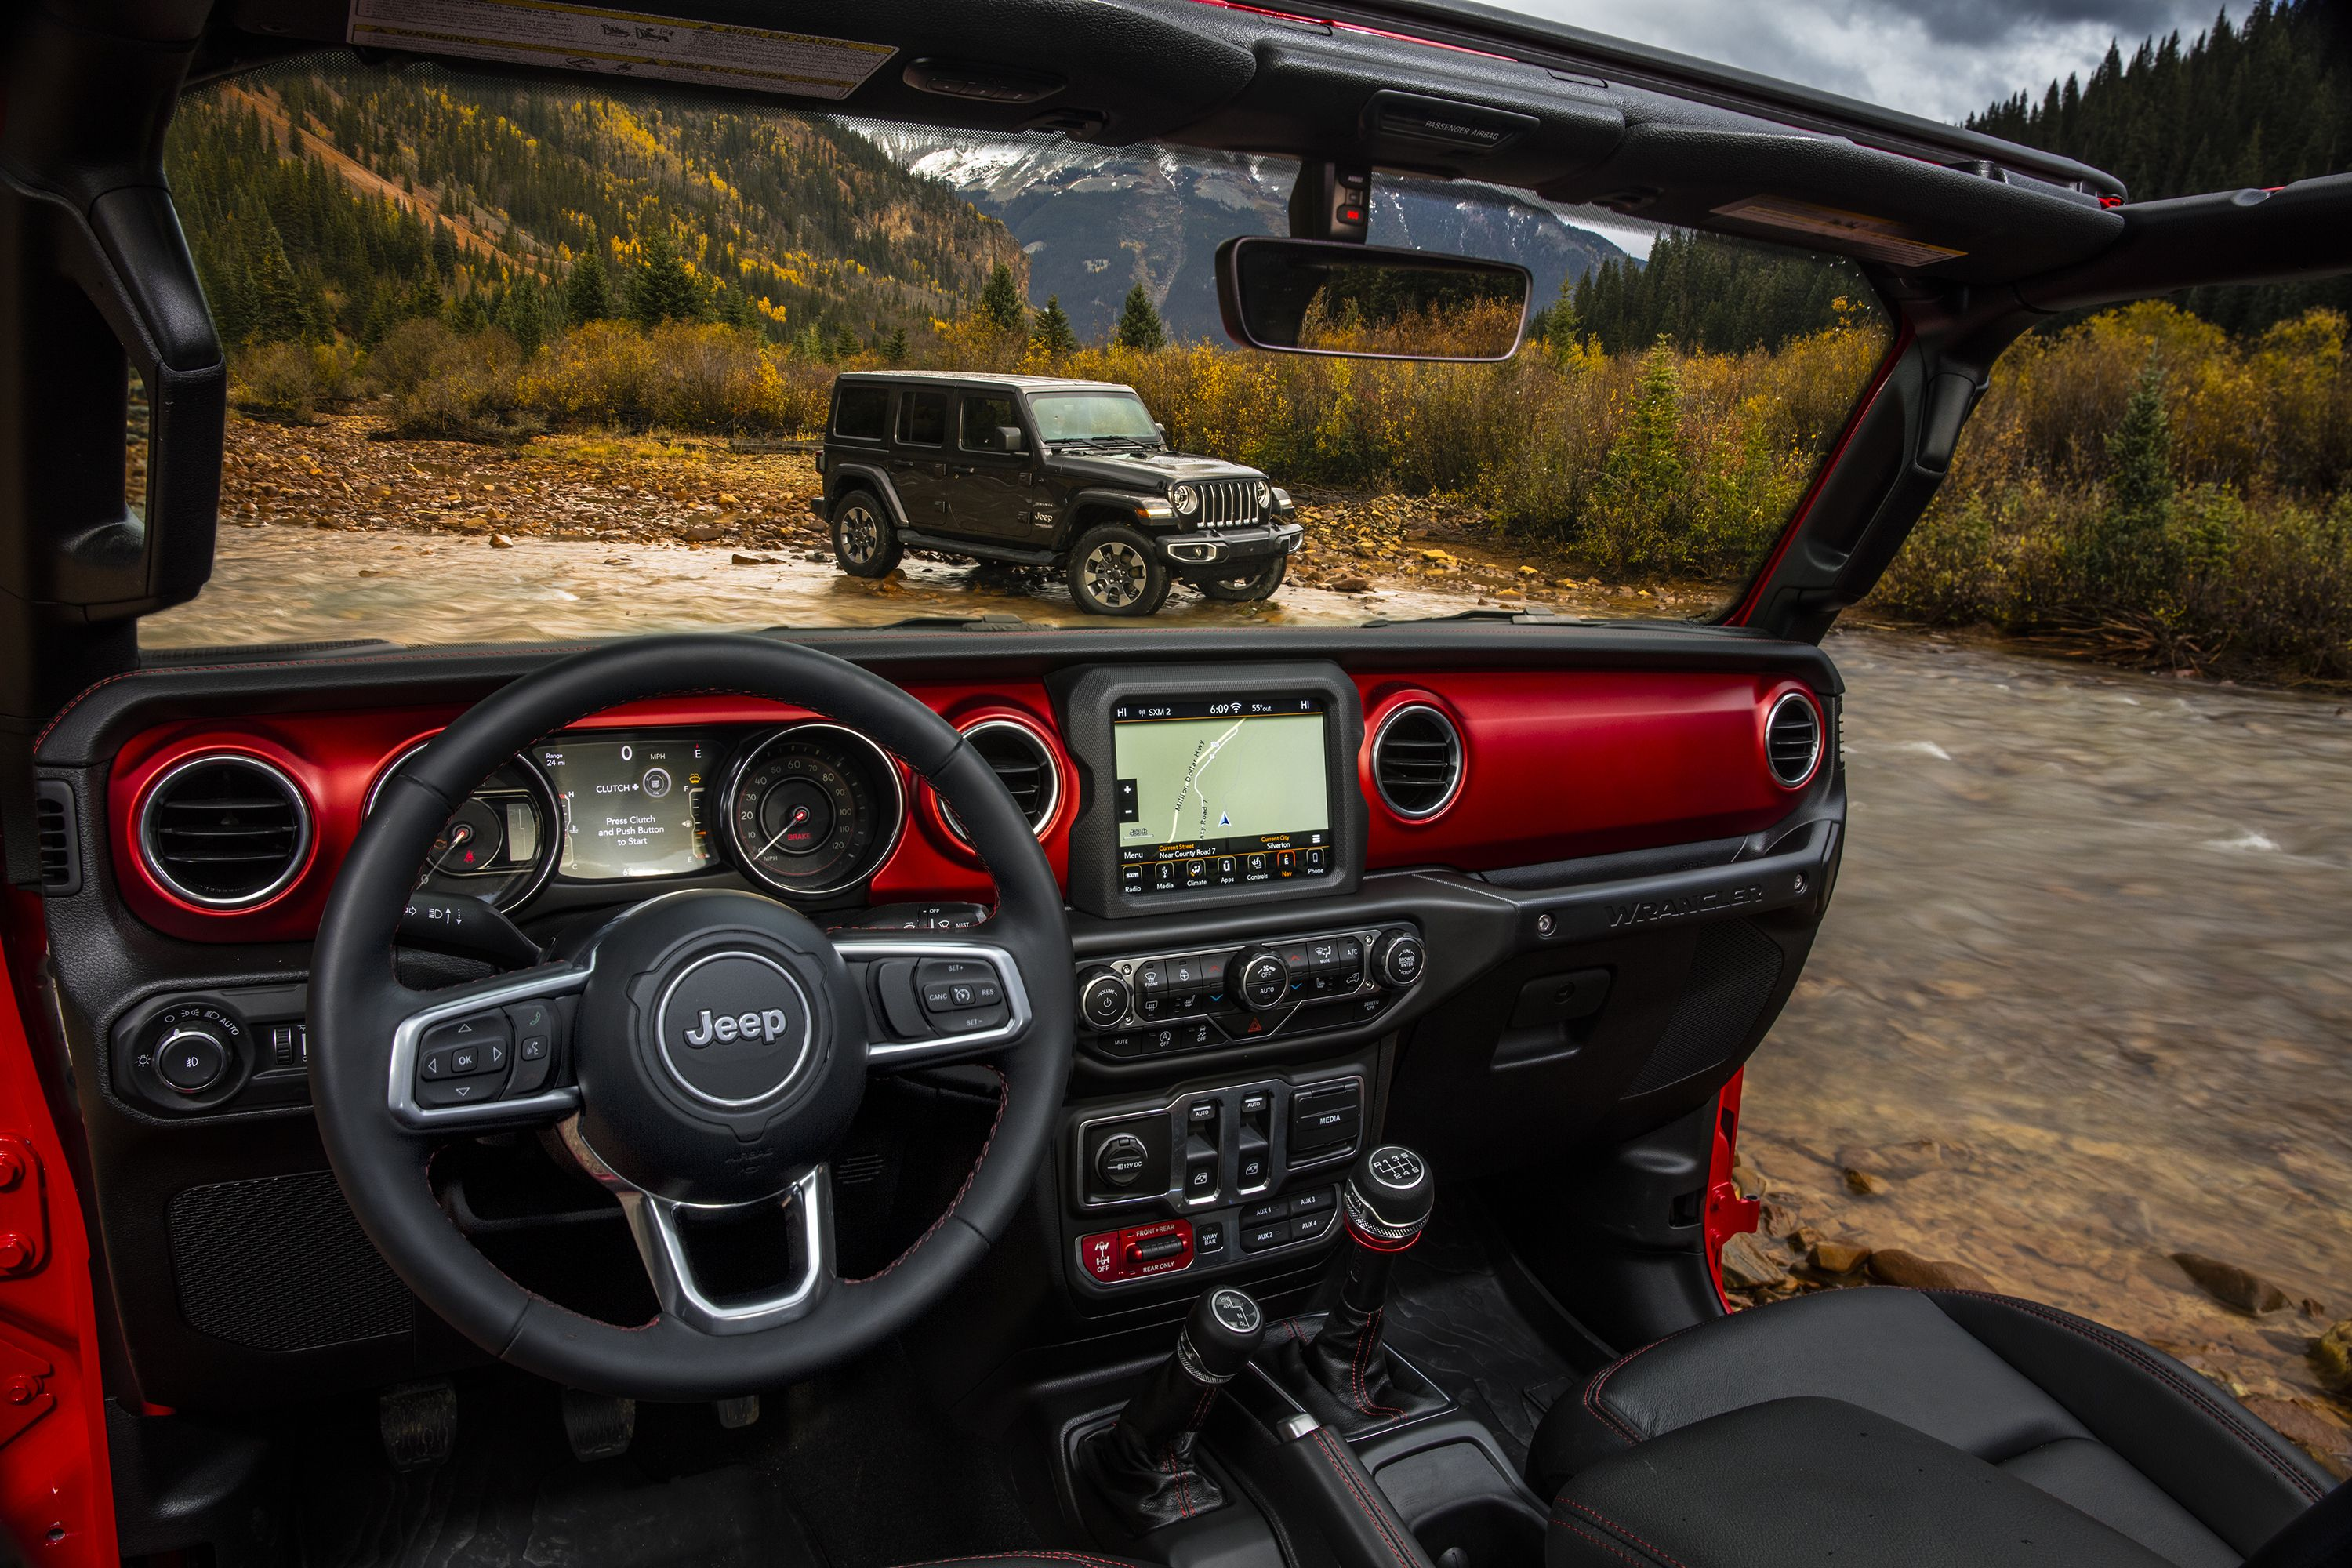 Introducing The All New Next Generation 2018 Jeep Wrangler